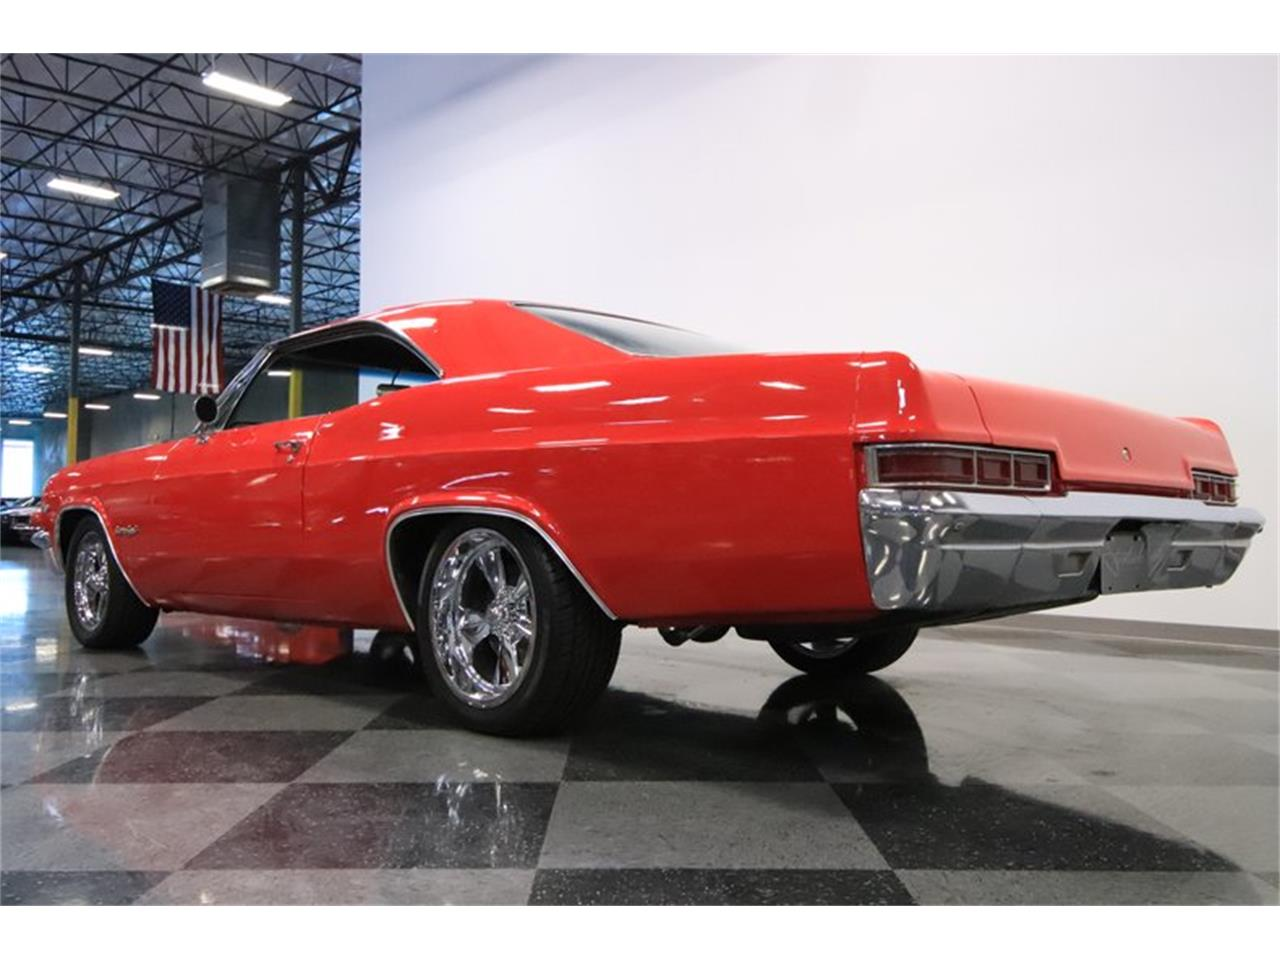 Large Picture of Classic 1966 Impala located in Arizona Offered by Streetside Classics - Phoenix - Q2EL